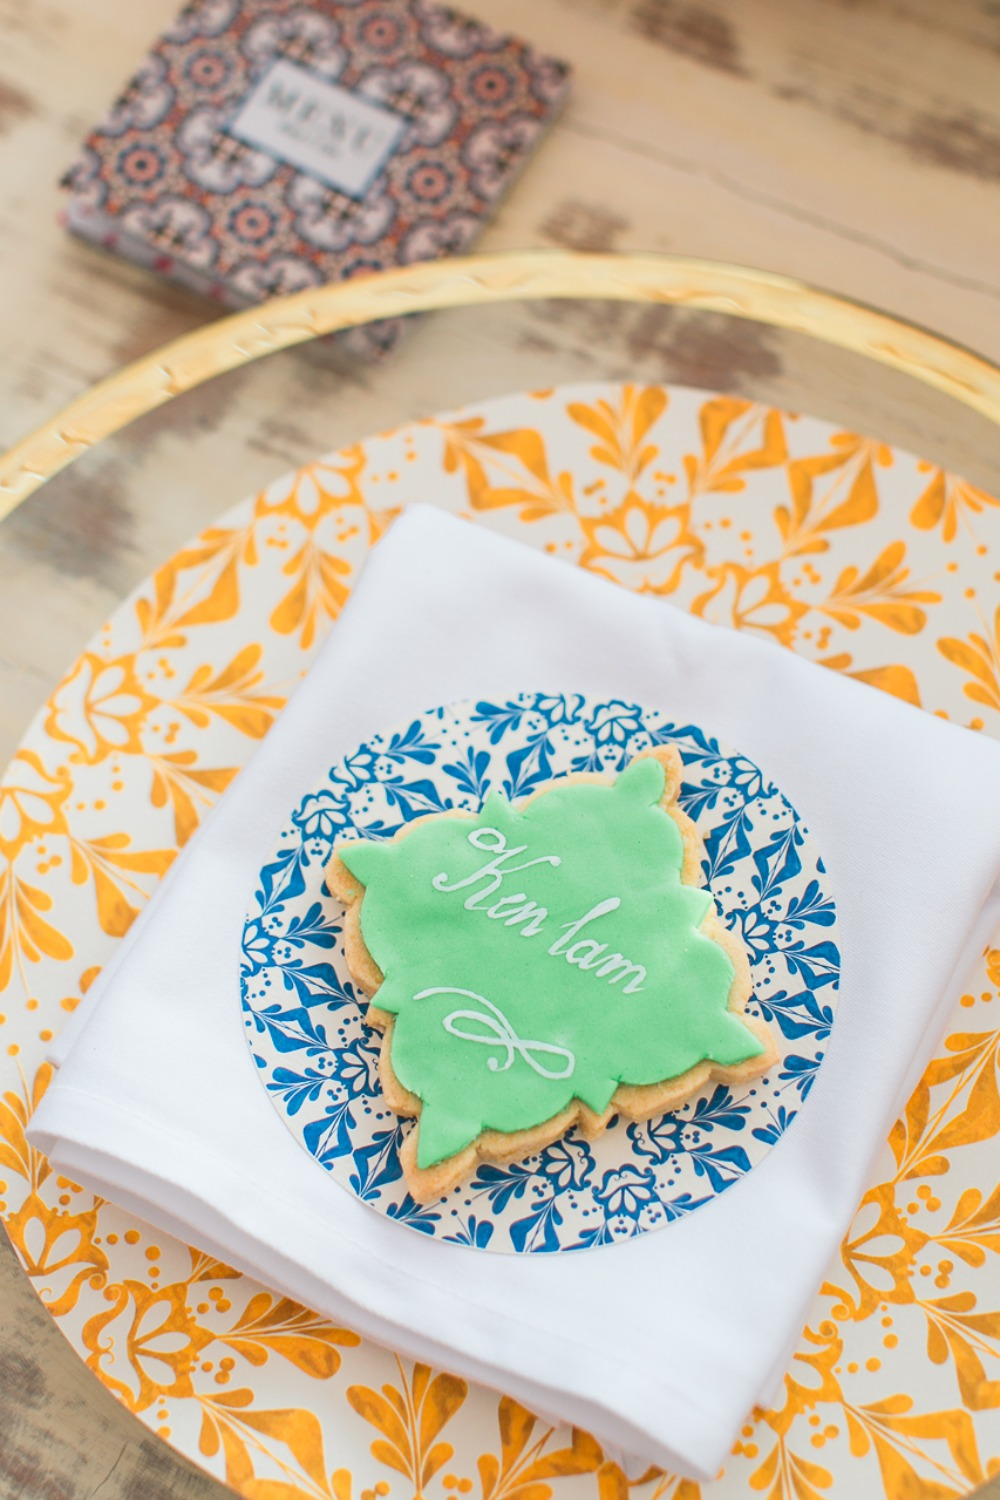 Cookie place card